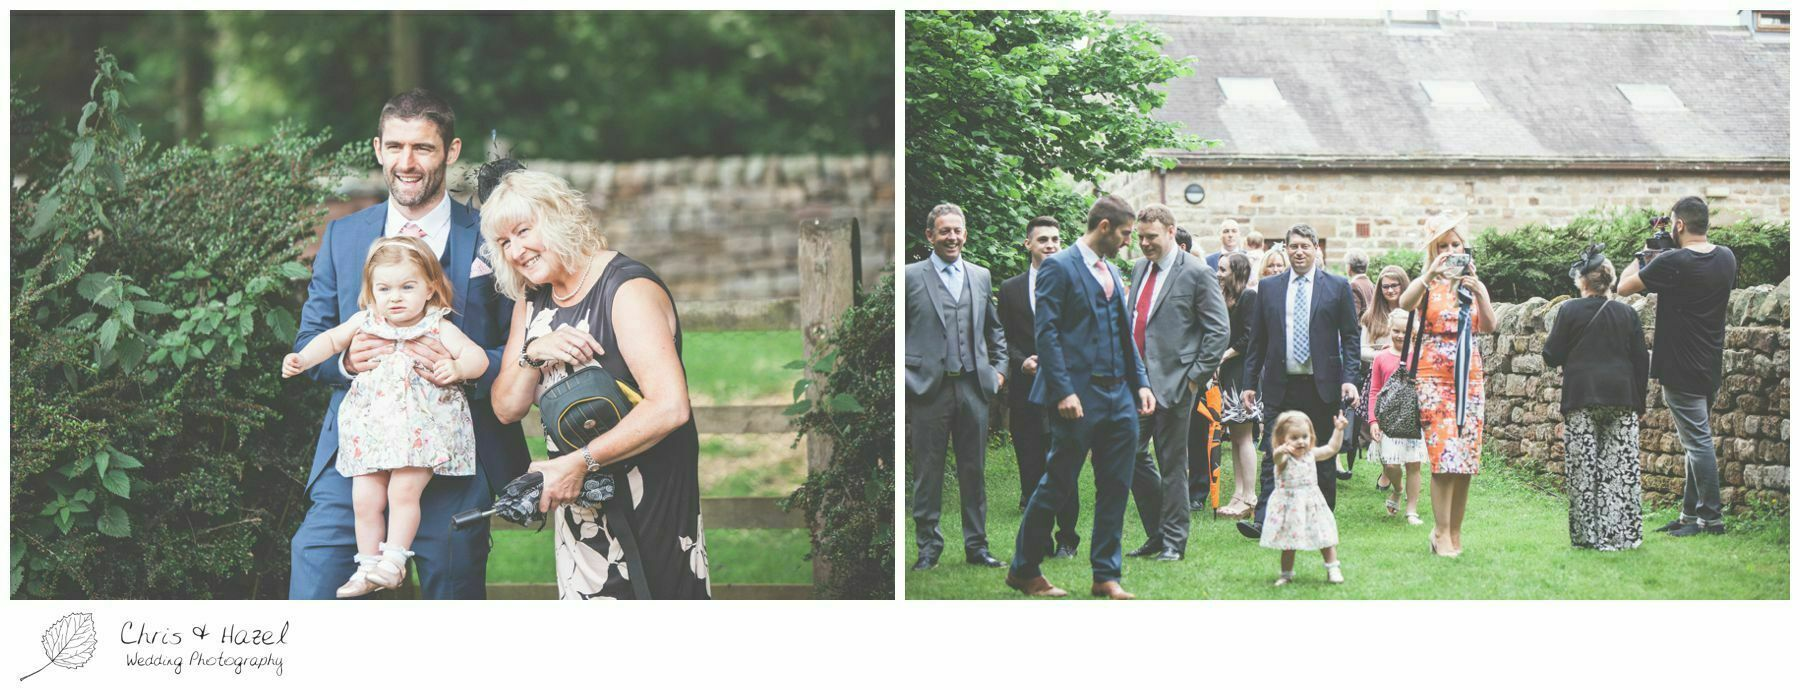 documentary wedding photography, guests mingling, woodland wedding, eco wedding, love letters, wedding, Eccup Wedding Photographer, Lineham Farm, Wedding Photography Leeds, Chris and Hazel Wedding Photography, Richard Wyatt, Laura Kelly